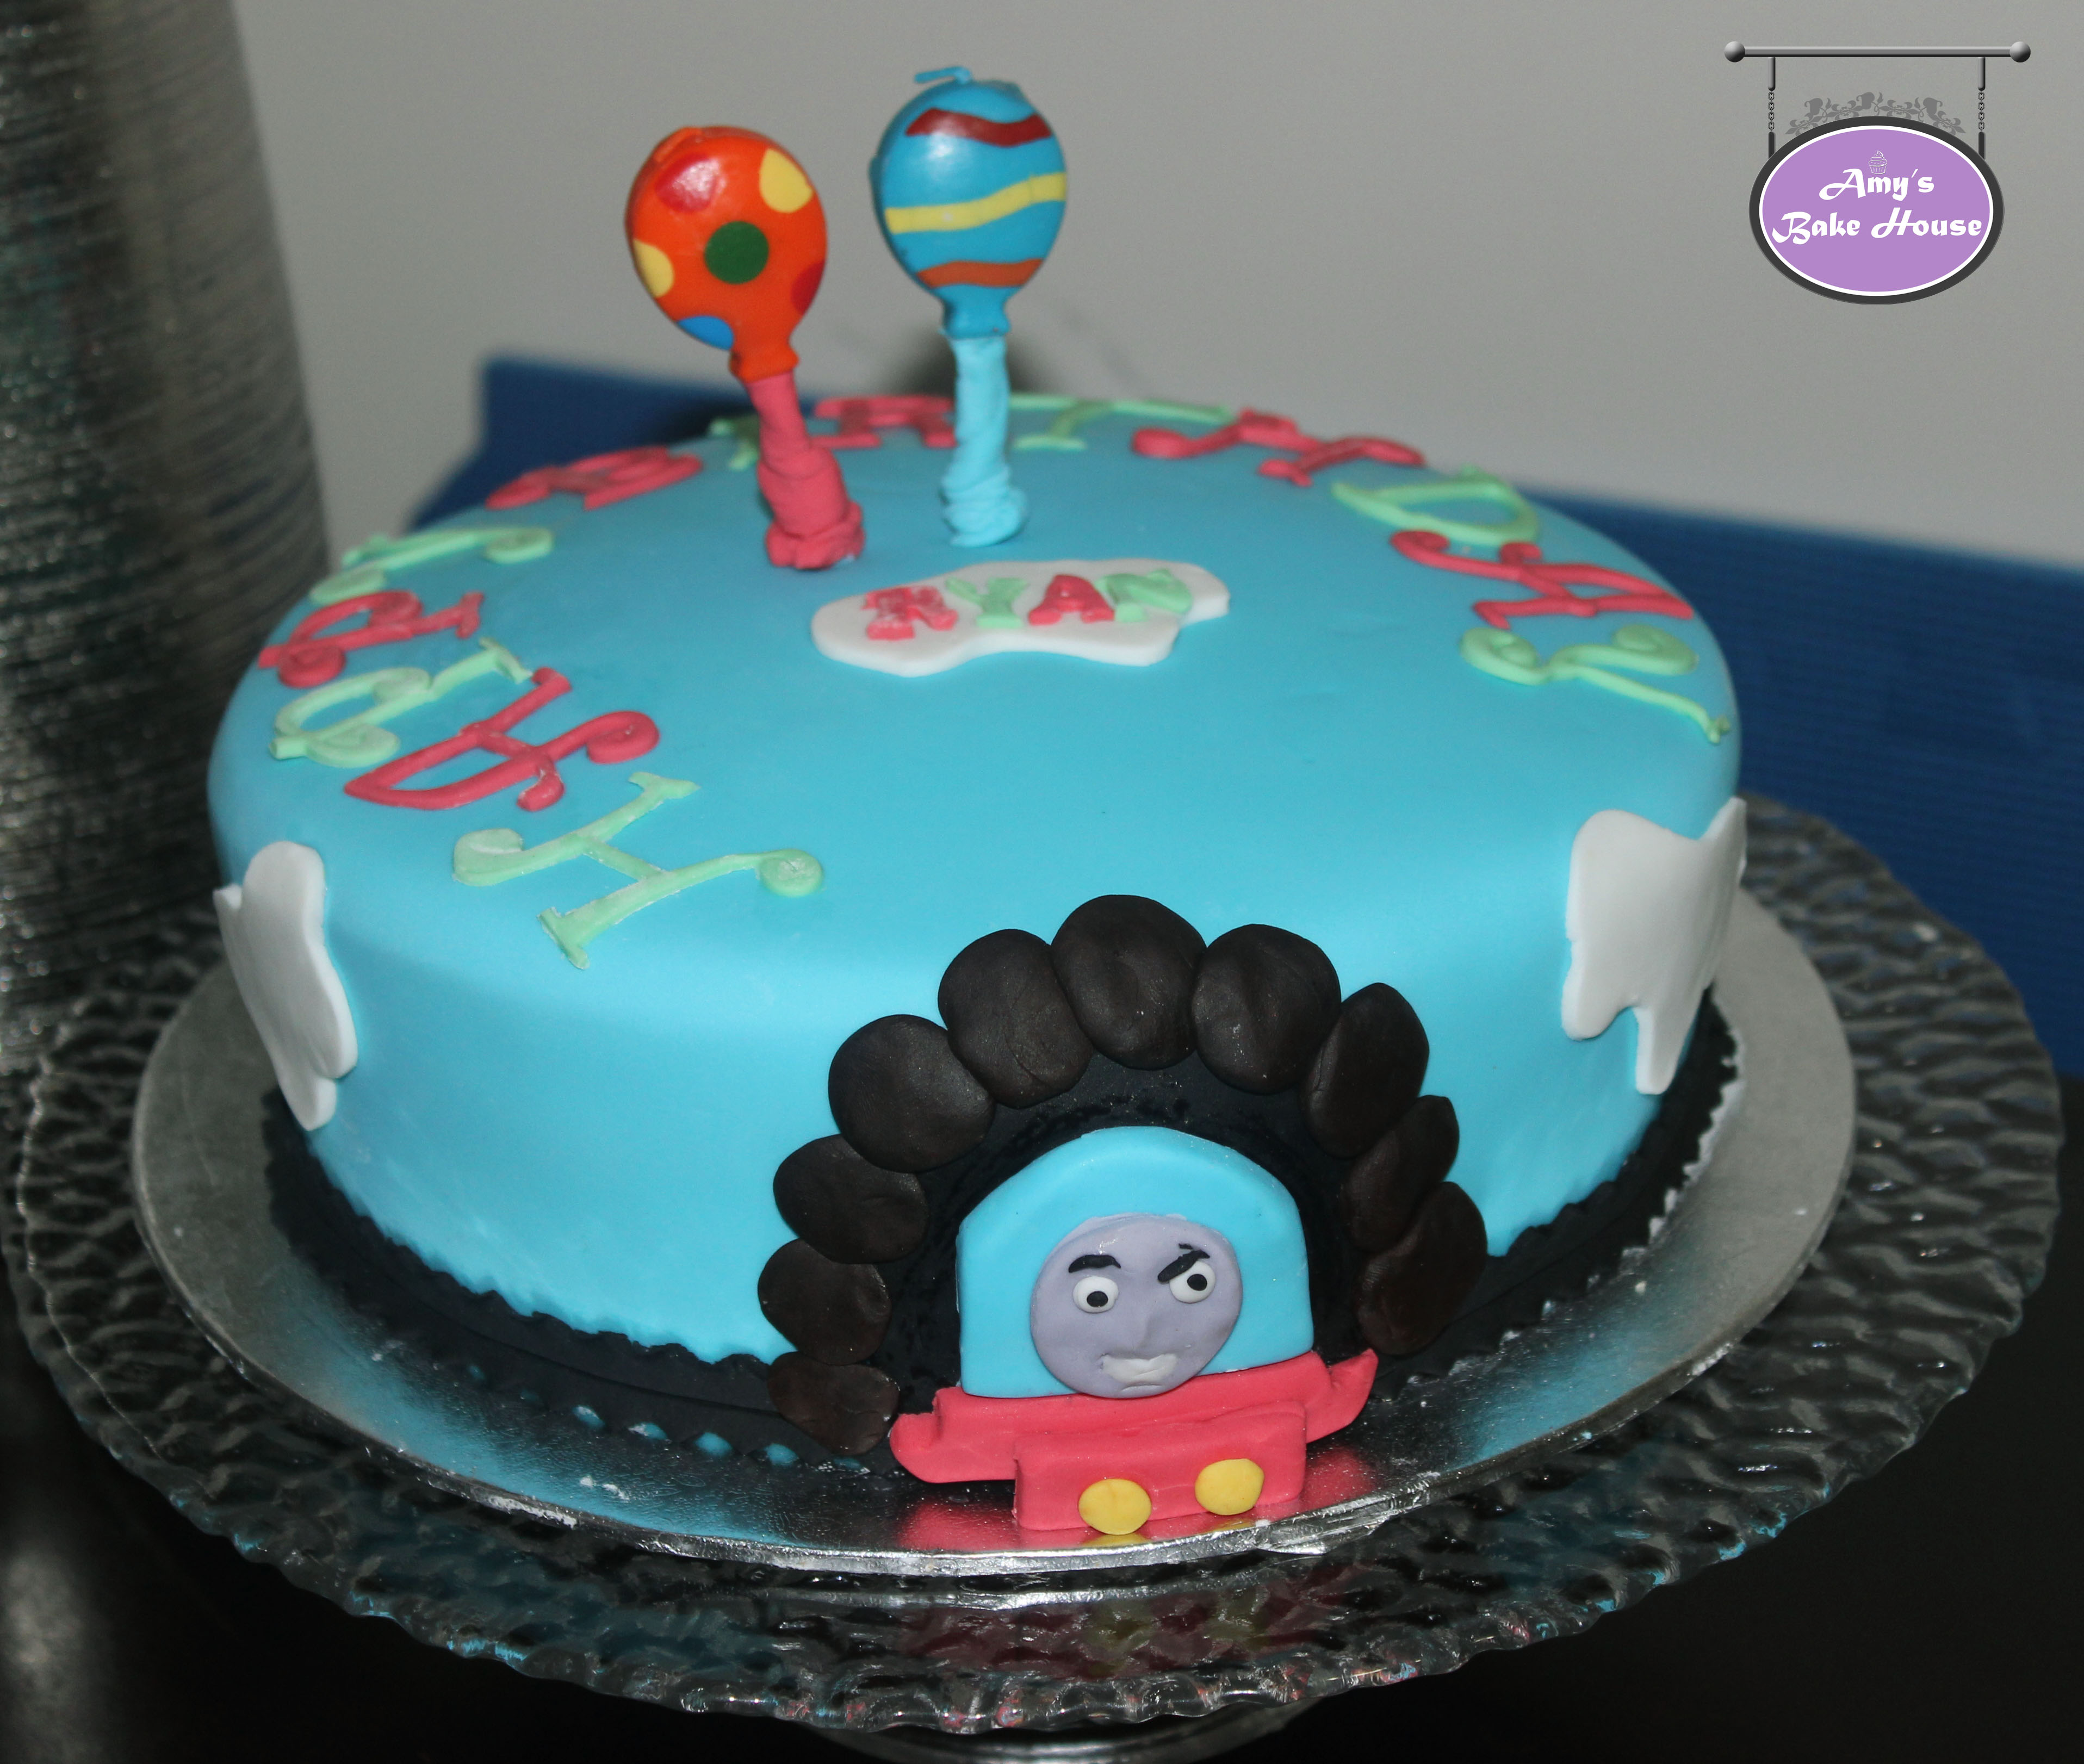 Order Our Yummy Cakes